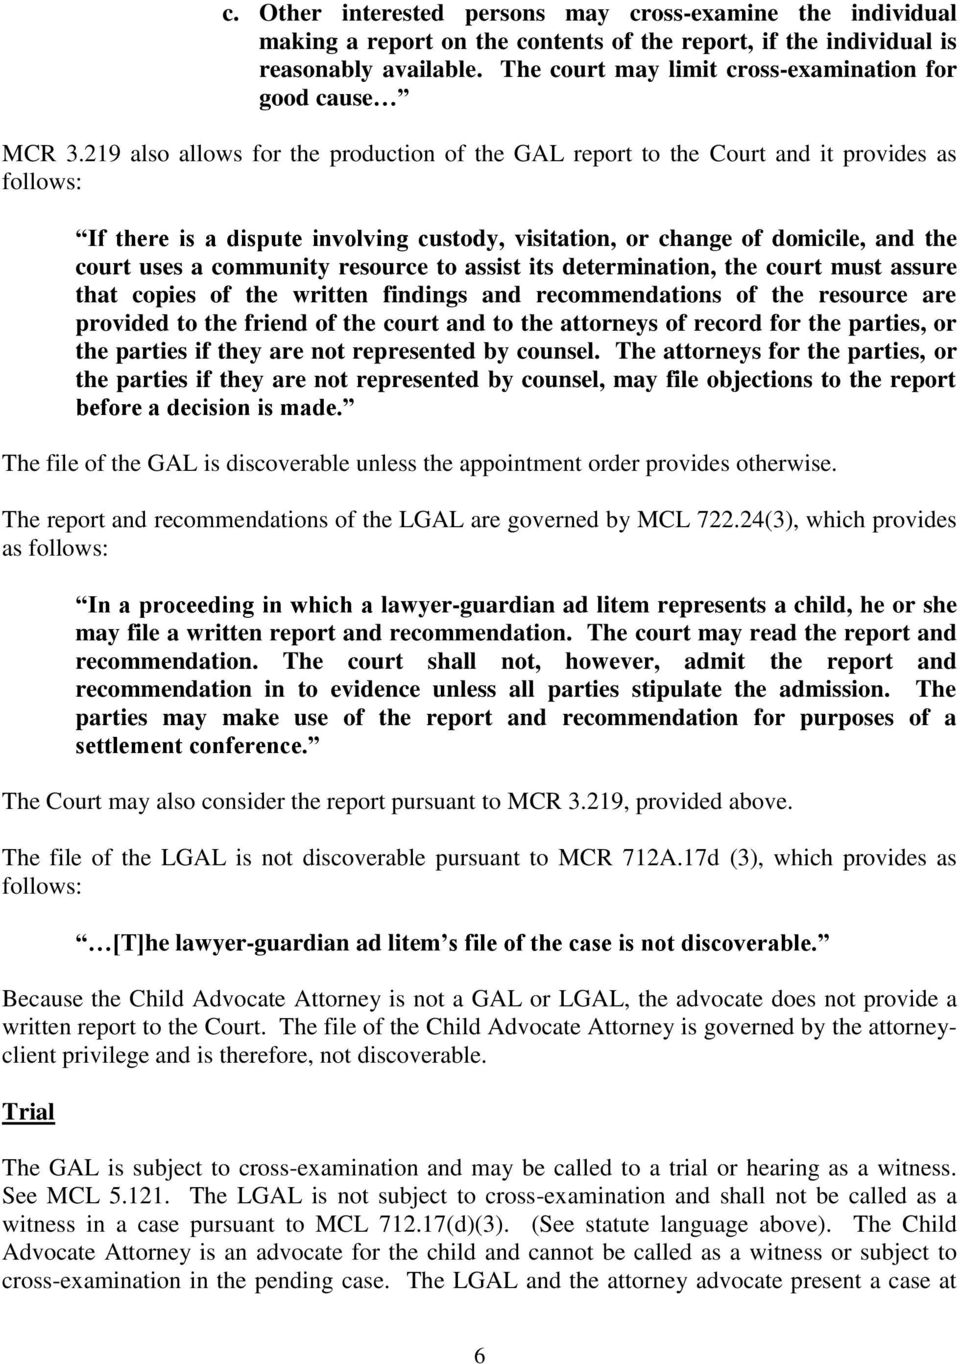 219 also allows for the production of the GAL report to the Court and it provides as follows: If there is a dispute involving custody, visitation, or change of domicile, and the court uses a